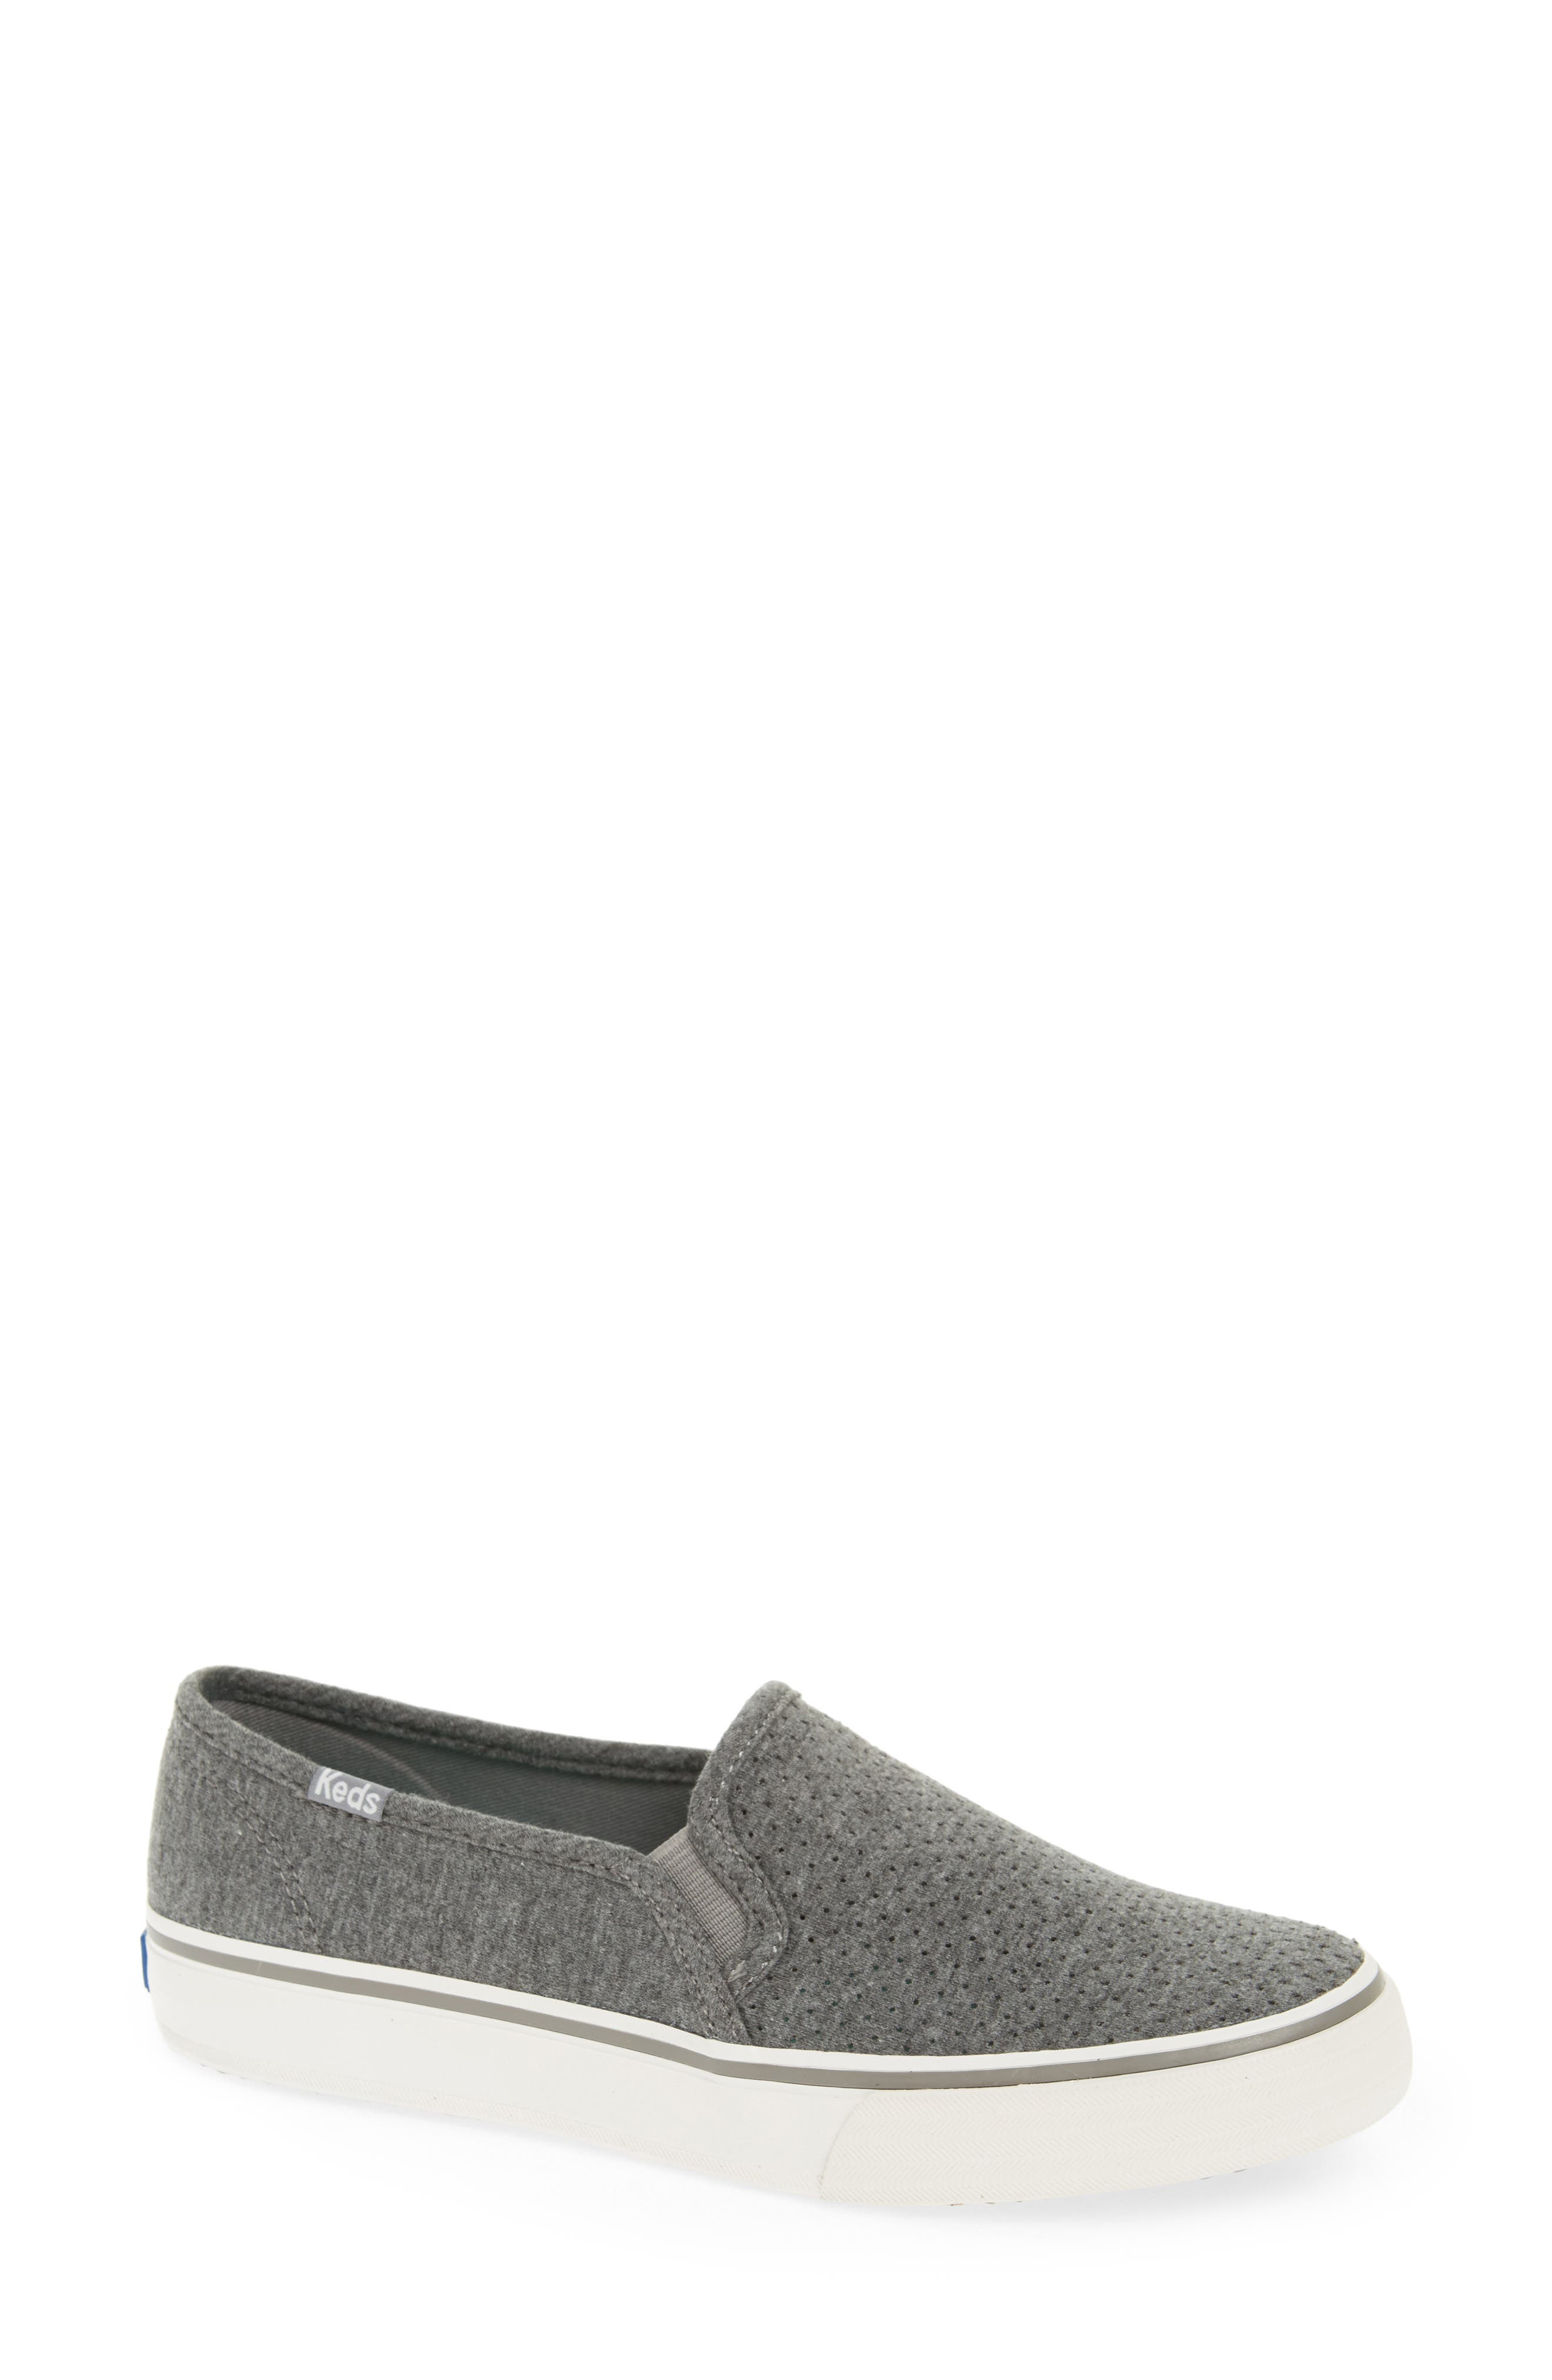 Double Decker Perforated Slip-On Sneaker,                             Main thumbnail 1, color,                             Charcoal